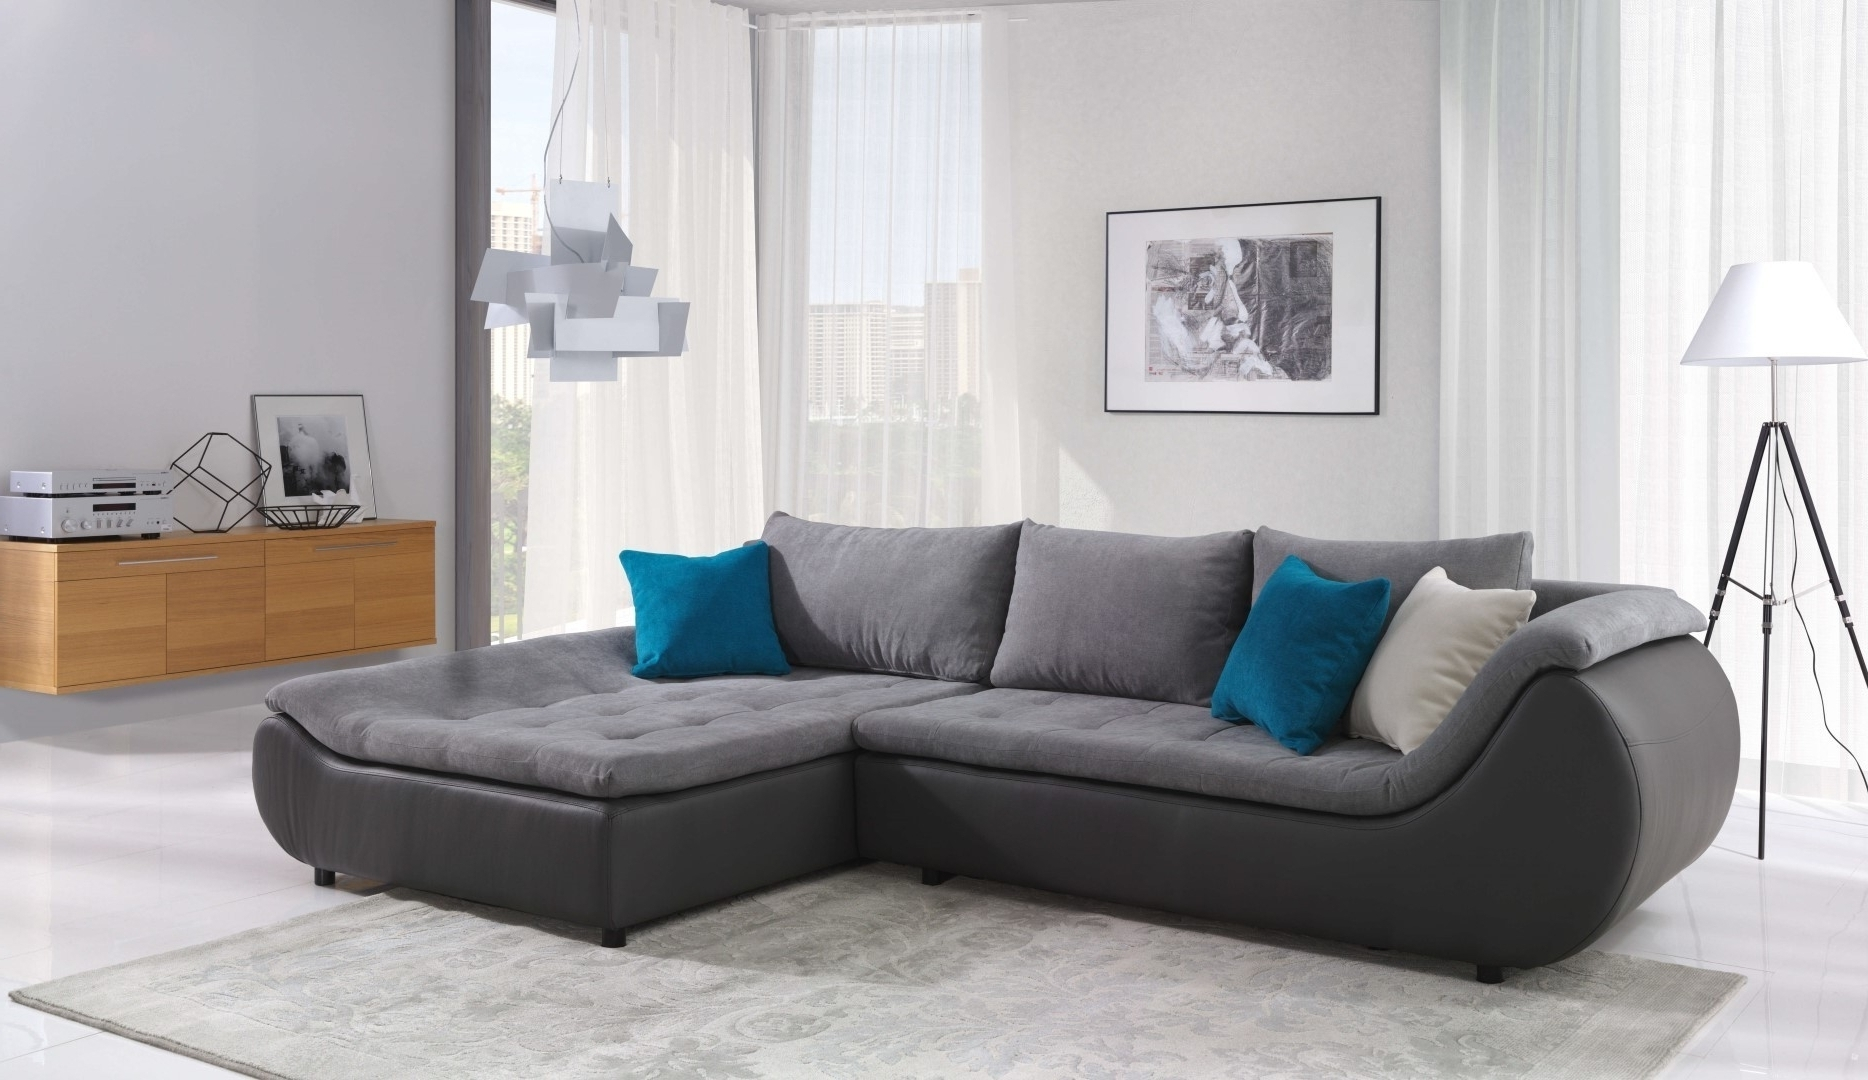 Trendy Collection Sectional Sofas Rochester Ny - Mediasupload pertaining to Rochester Ny Sectional Sofas